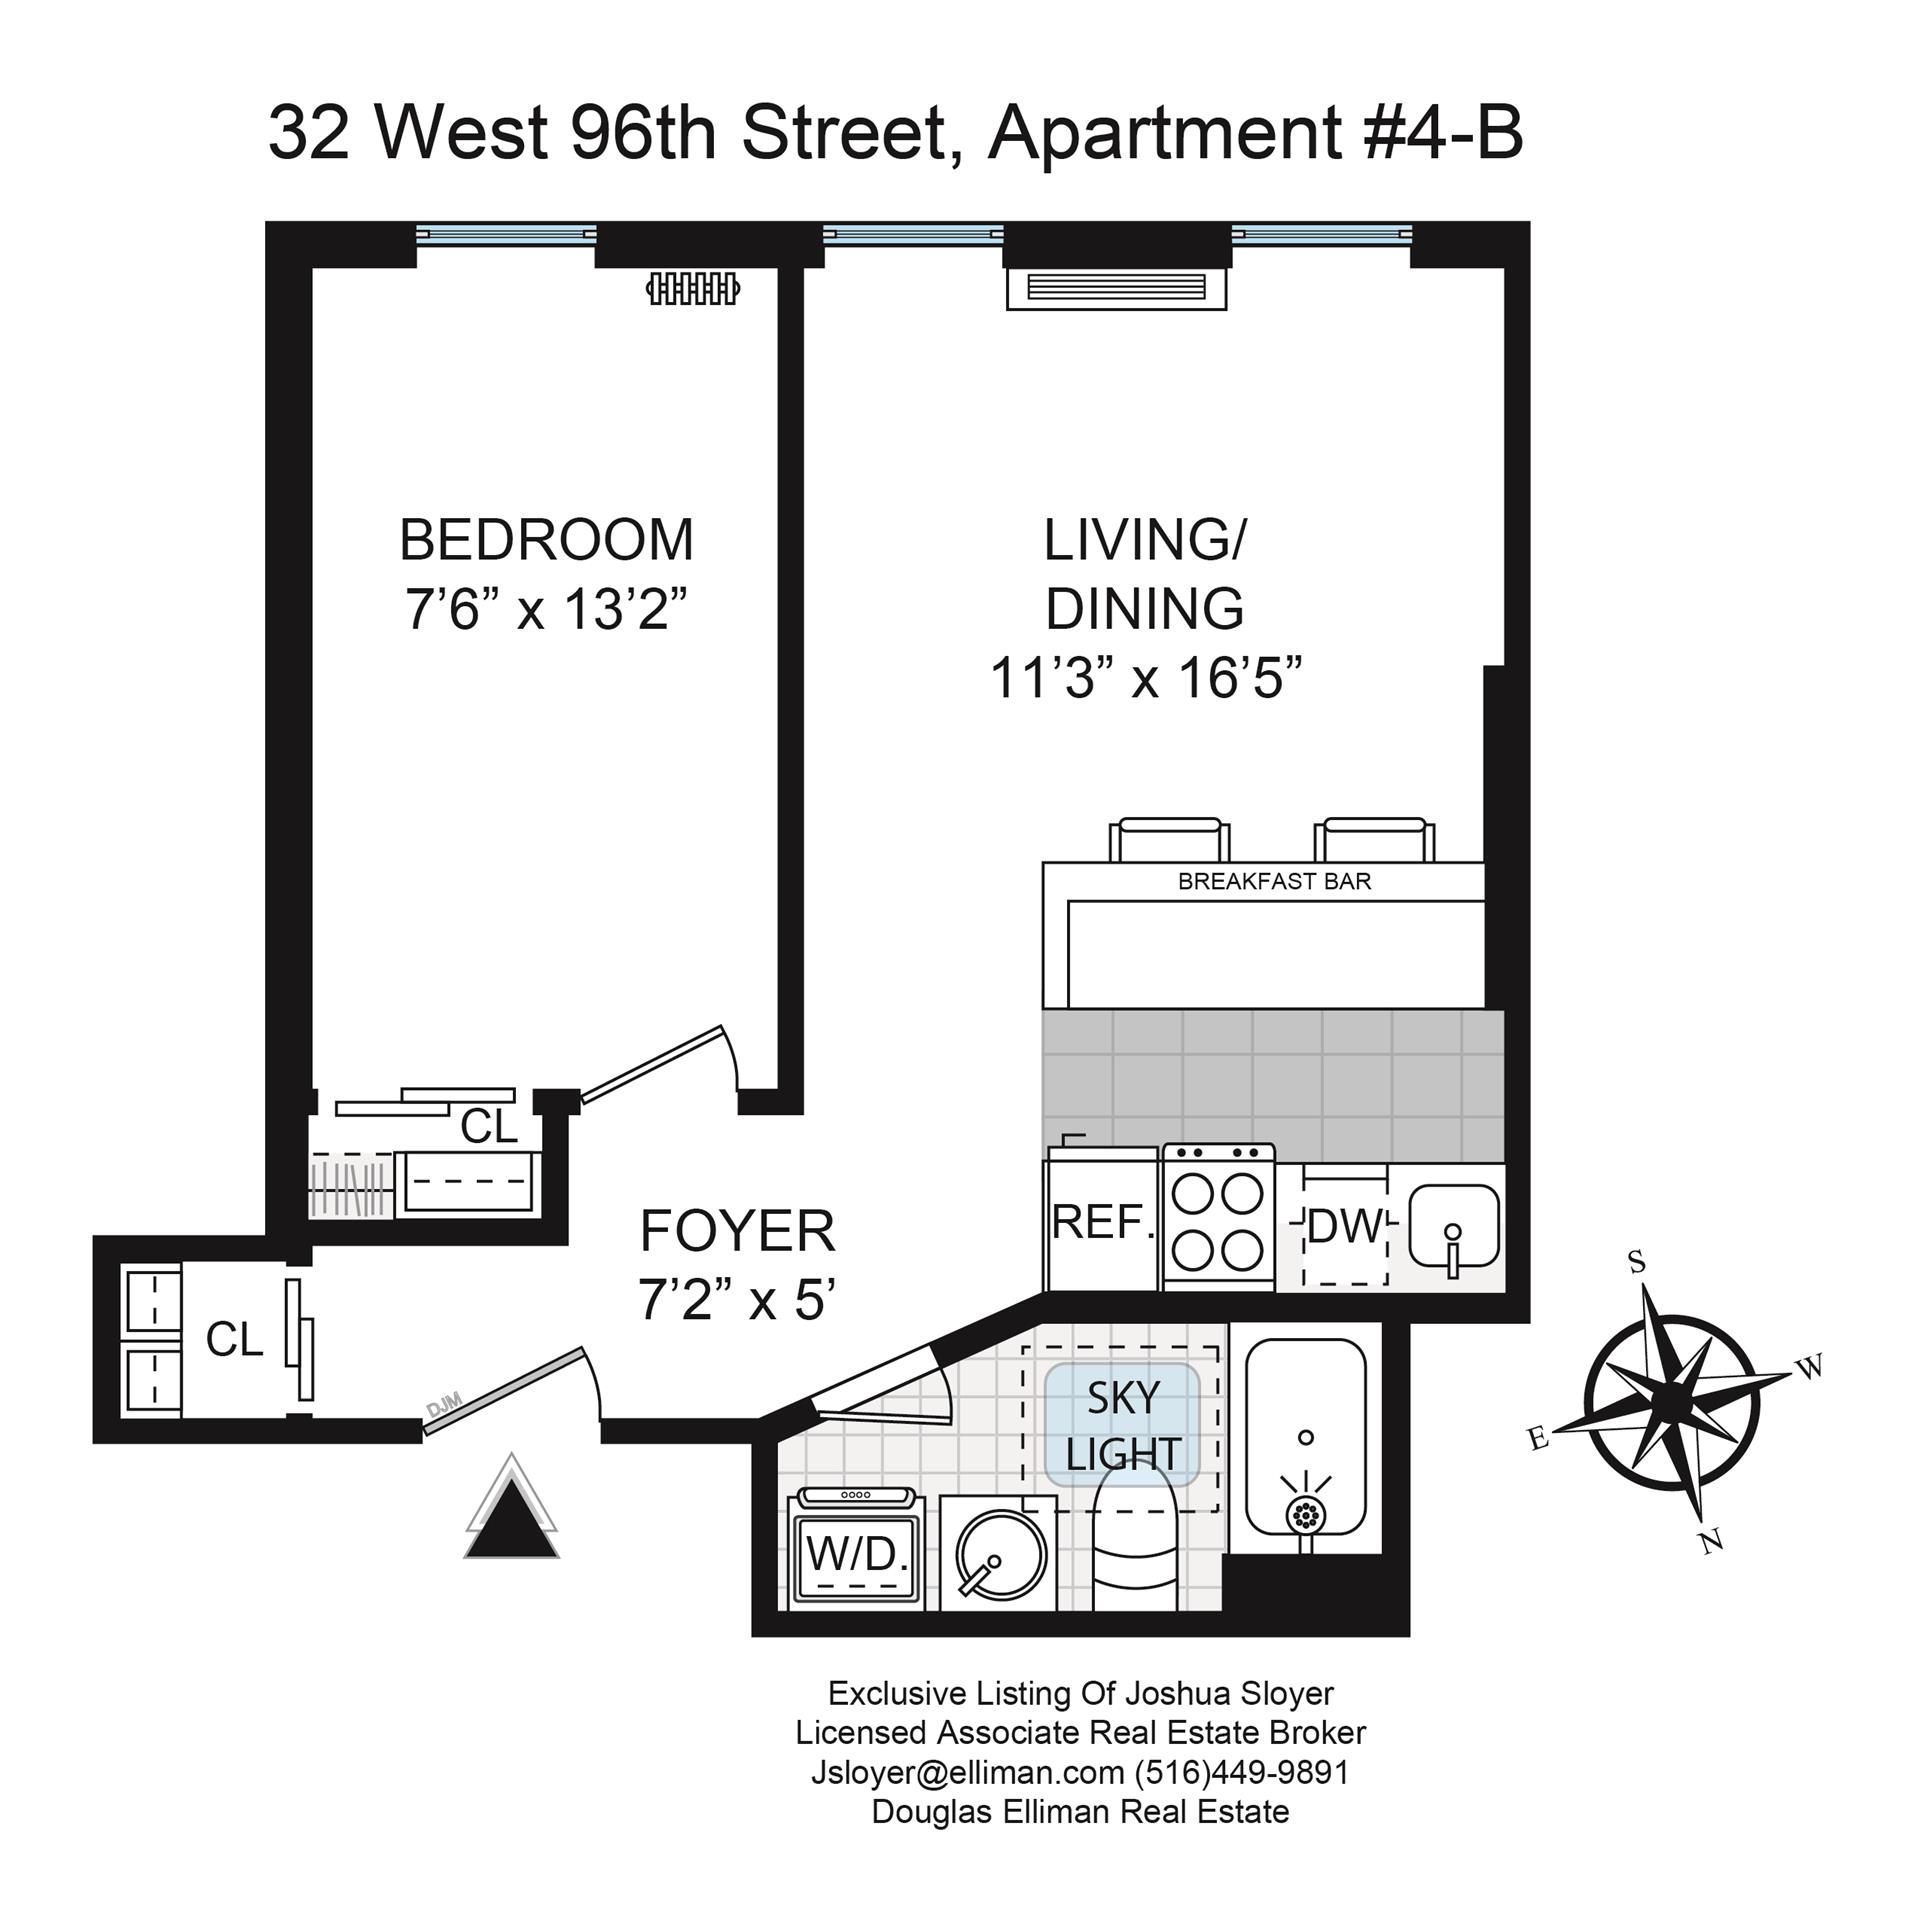 Floor plan of 32 West 96th St, 4B - Upper West Side, New York